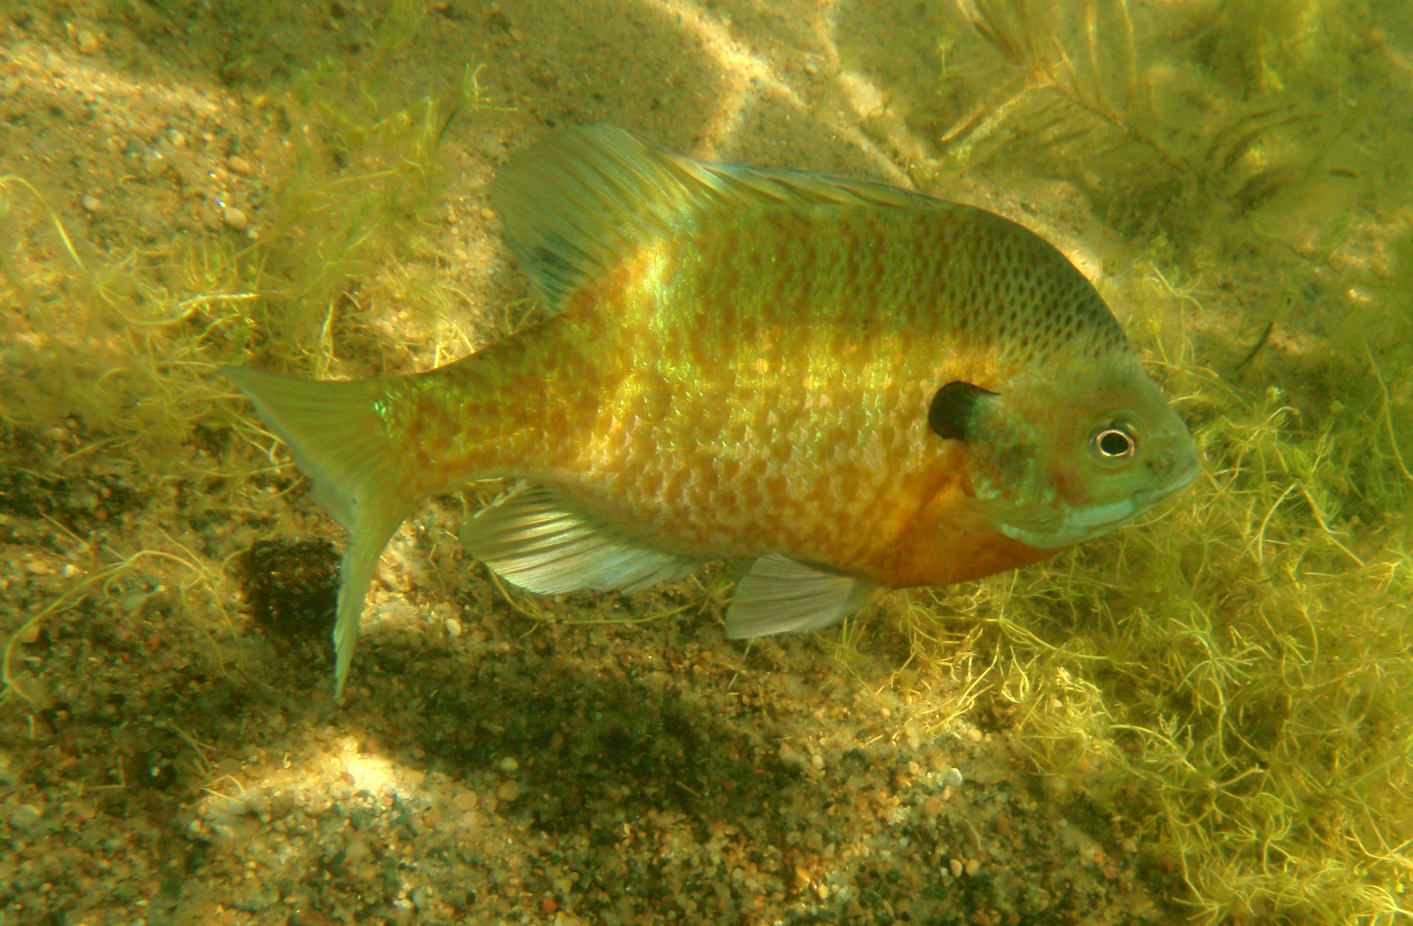 Midwestern Fish | The Old Naturalist